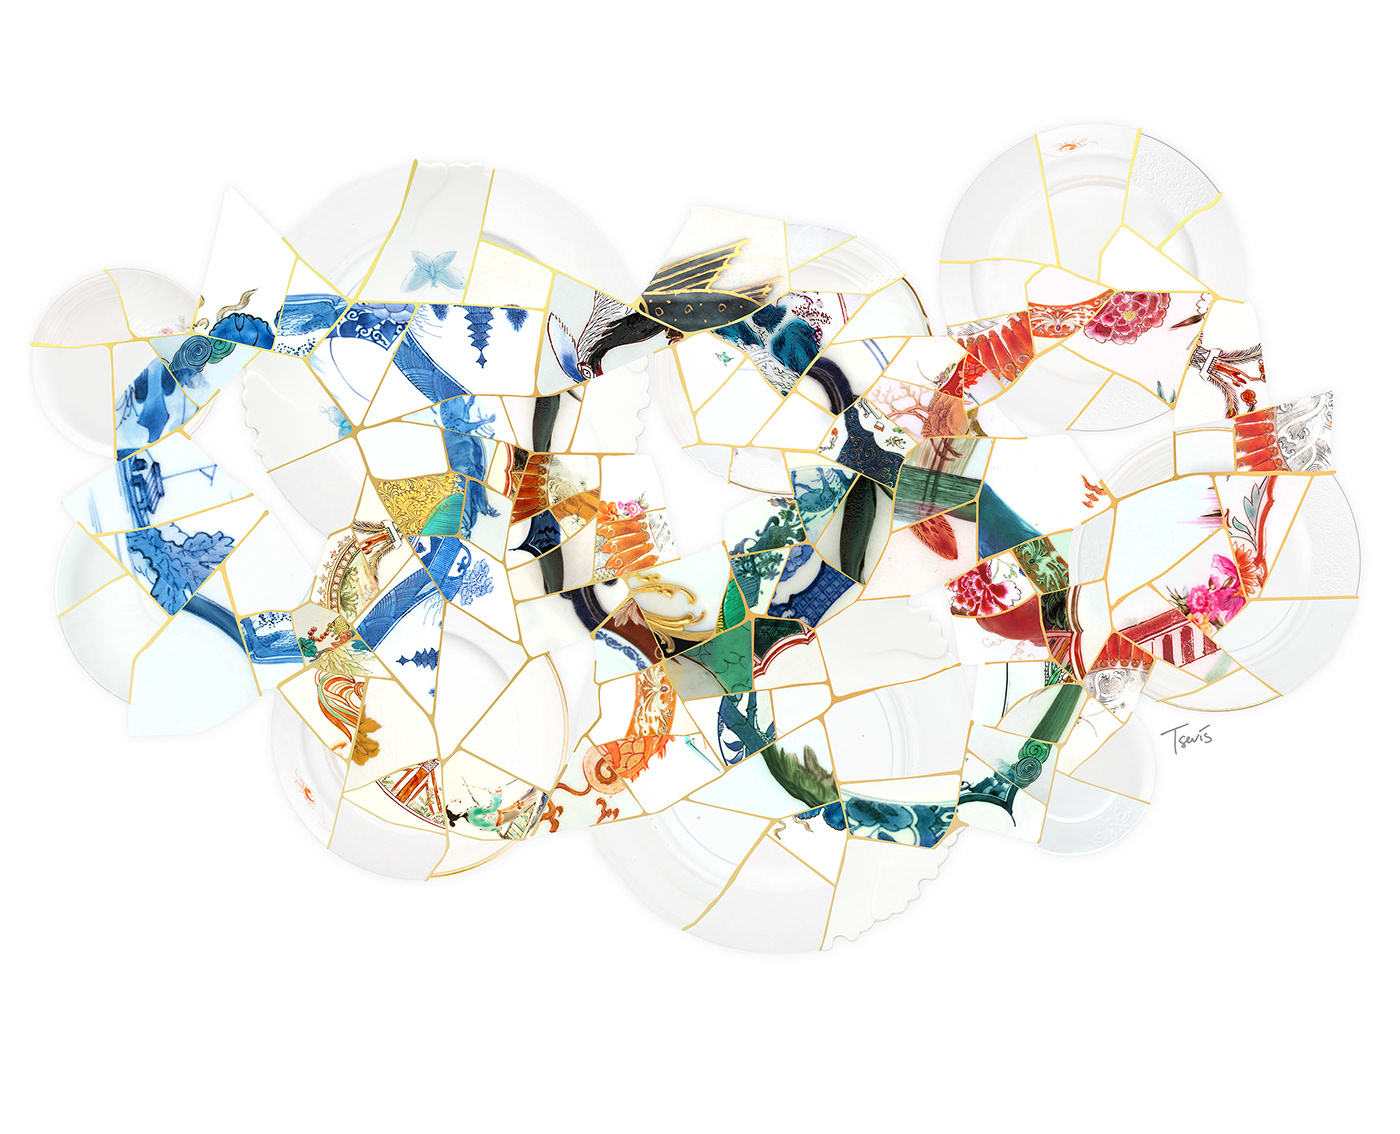 The Olympic Rings created as Kintsugi art.